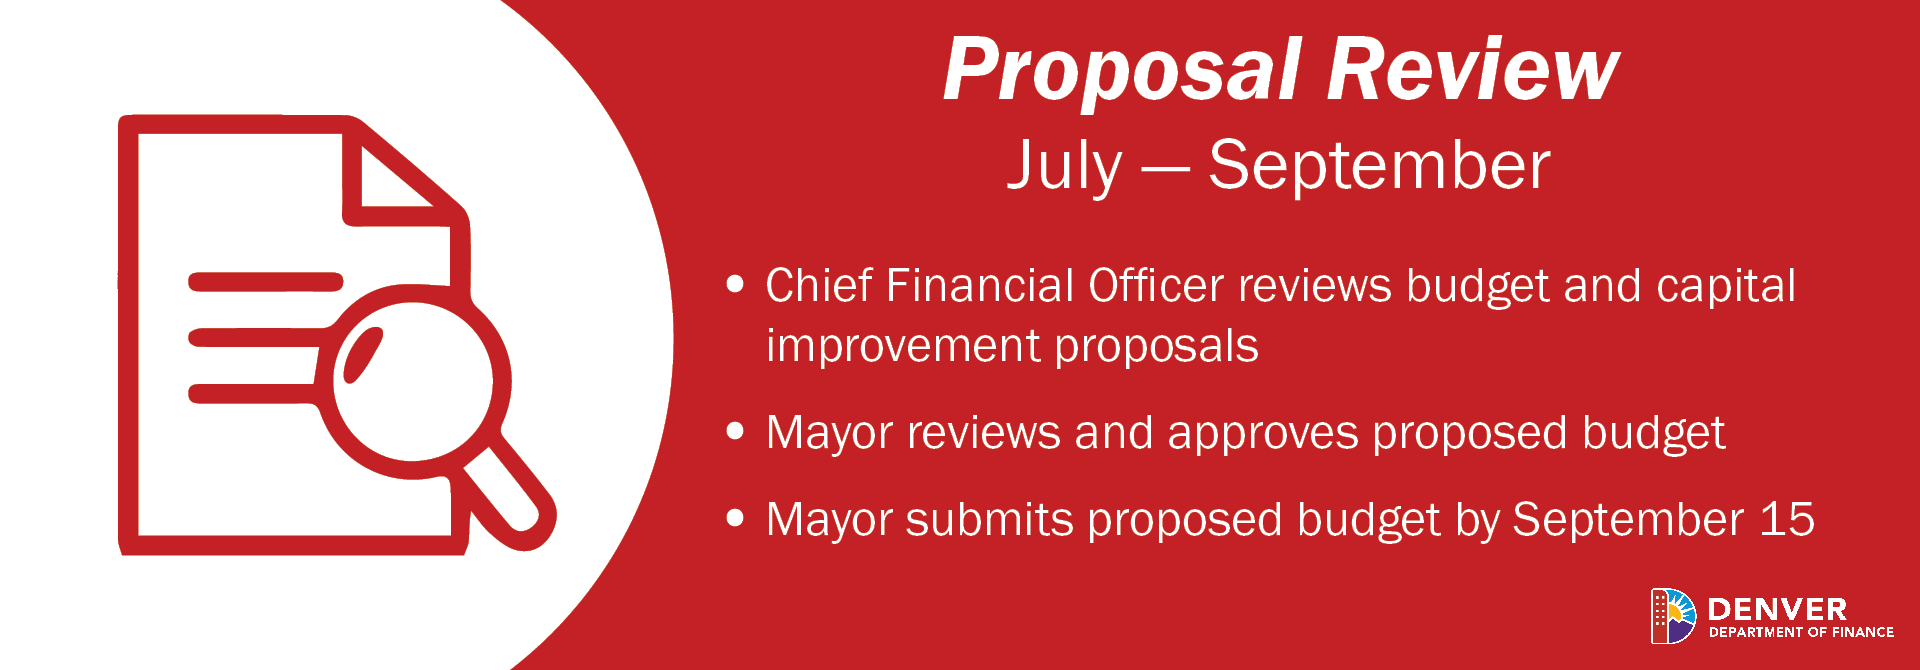 Q3 Budget Process - July through Sept. - CFO and Mayor Budget Review, Release Proposed Mayor's Budget